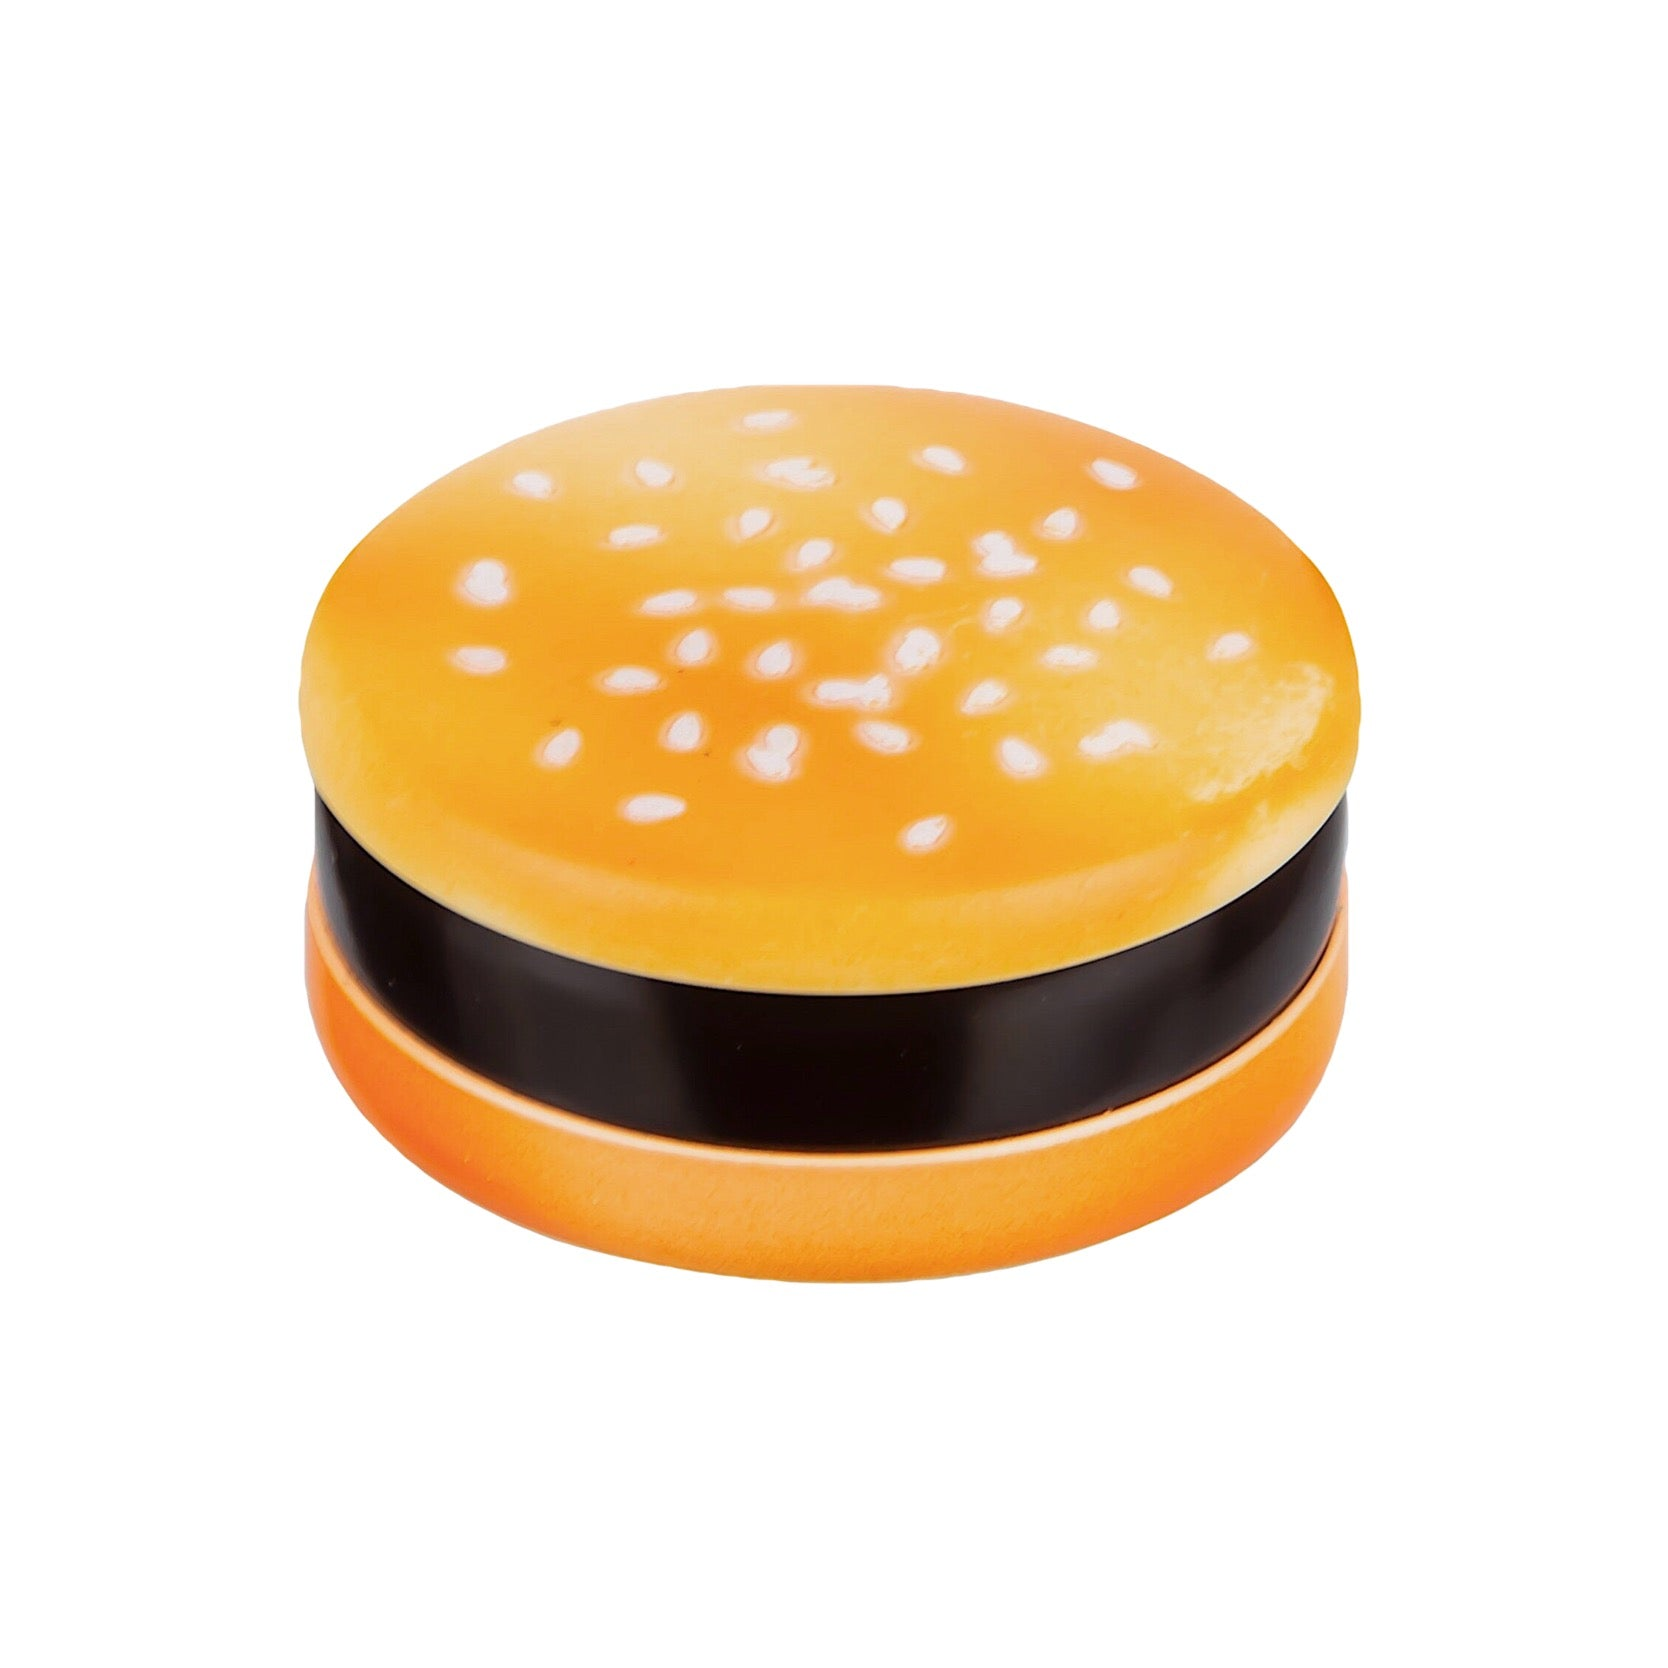 CaliConnected 3-Piece Hamburger Grinder